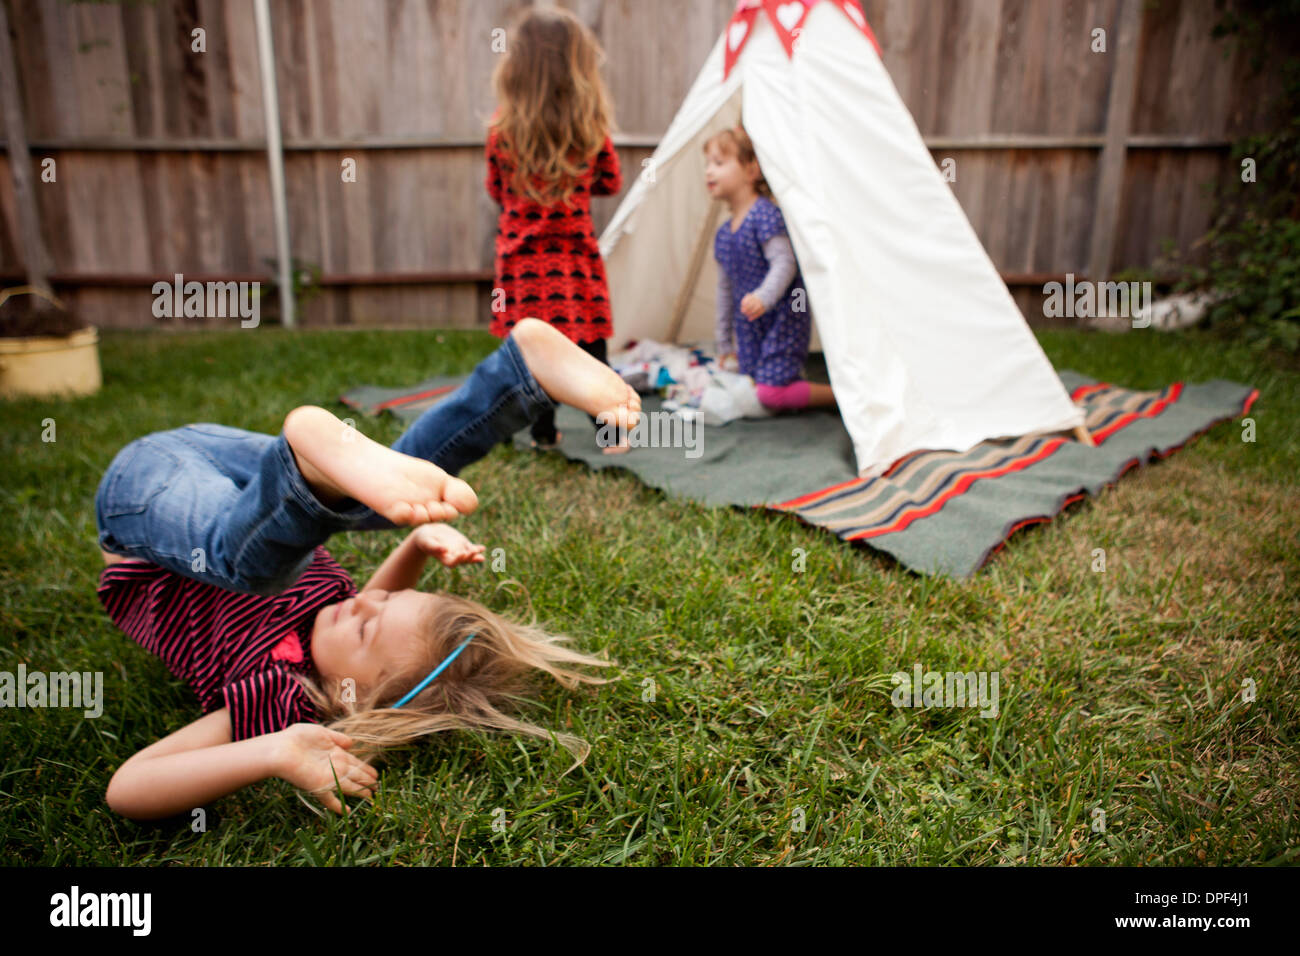 Three young girls playing in garden - Stock Image